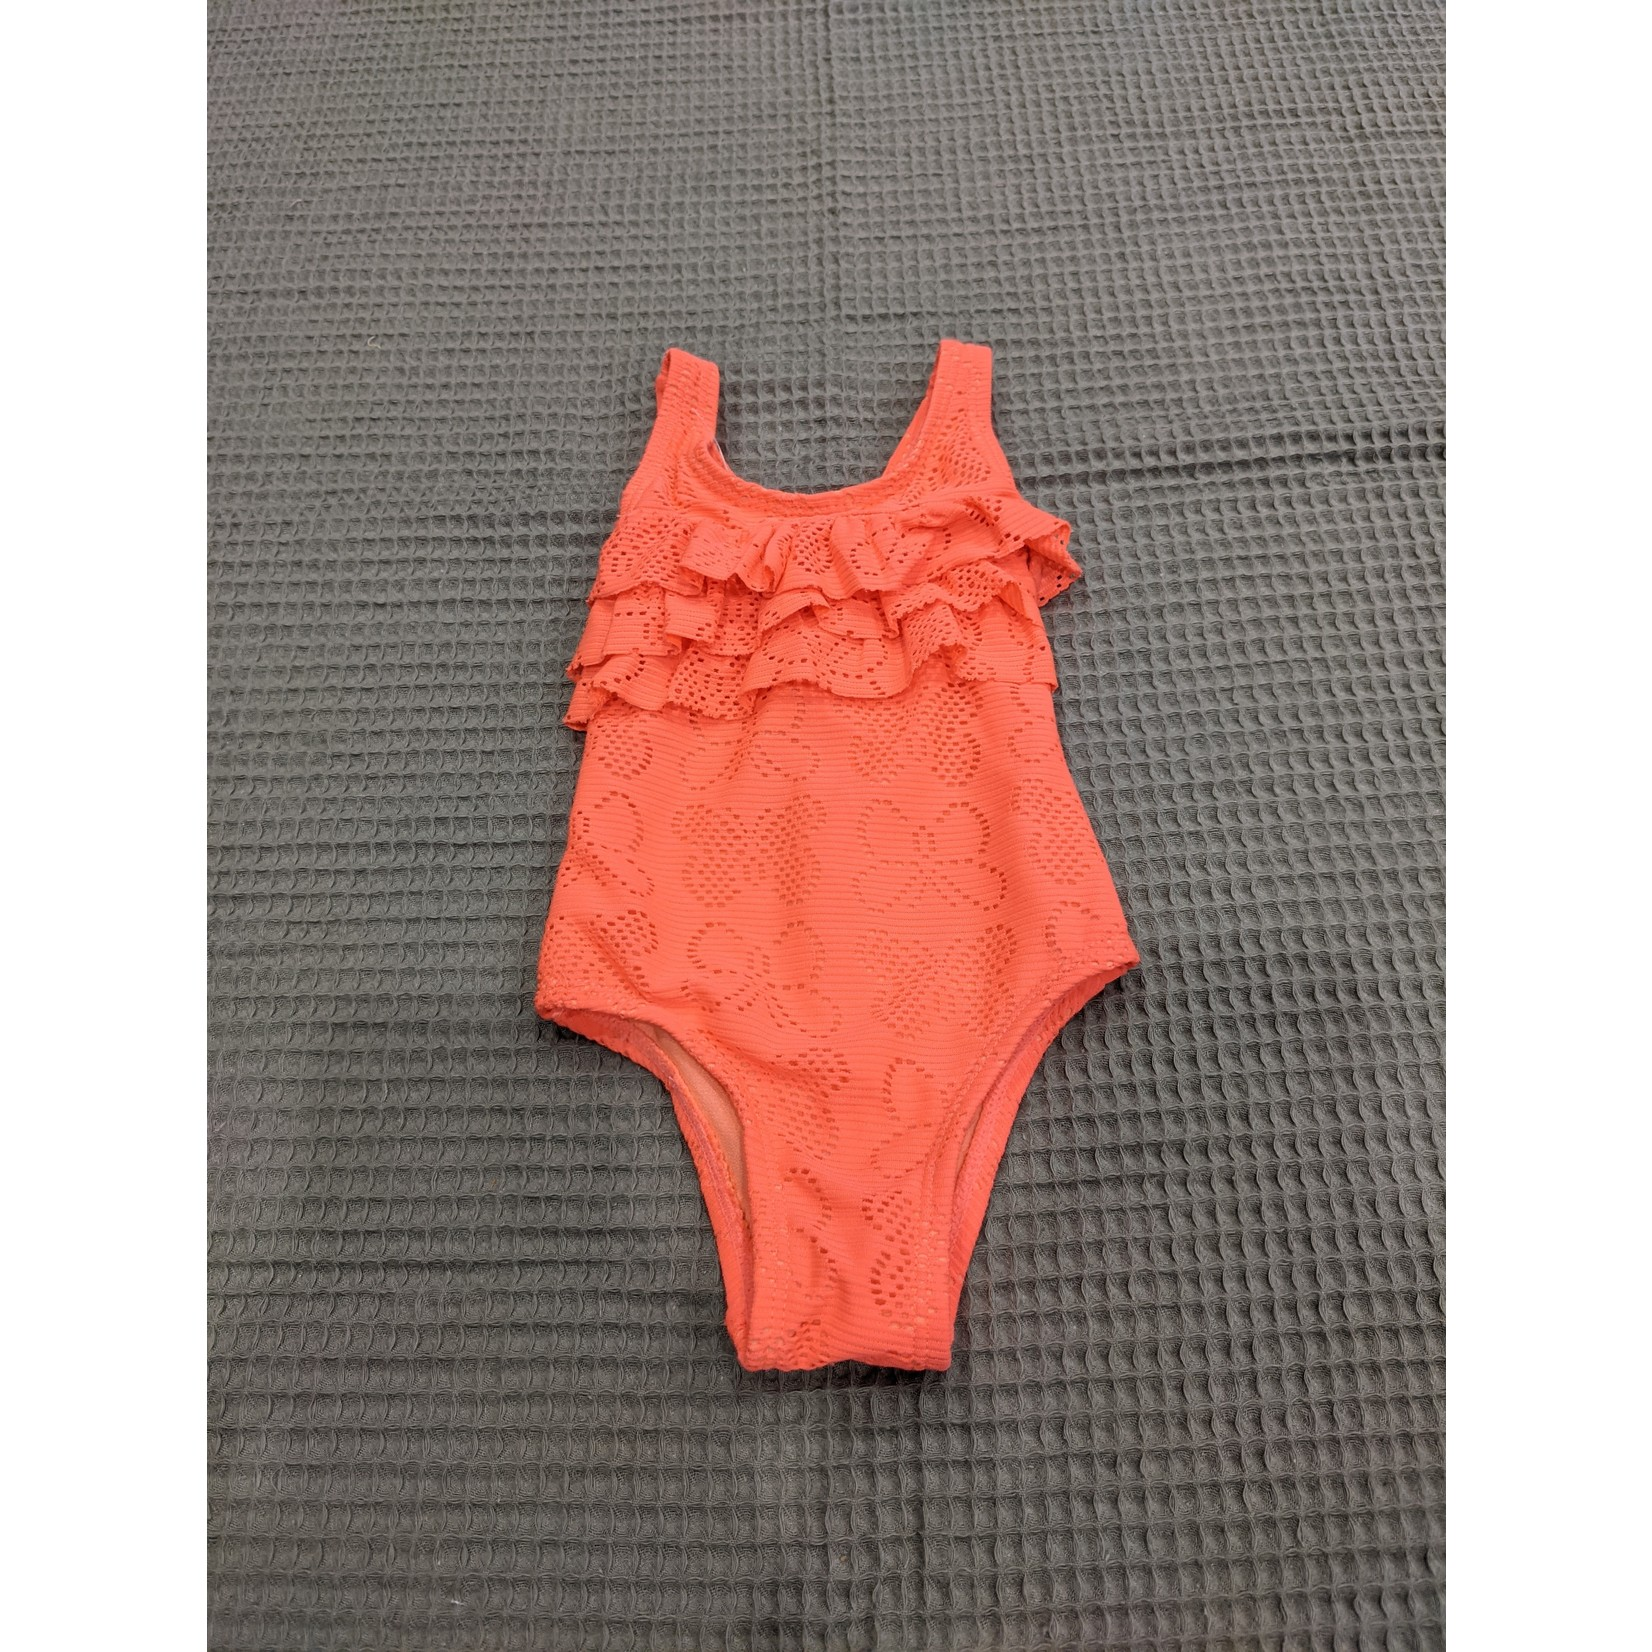 #88 Maillot rose corail